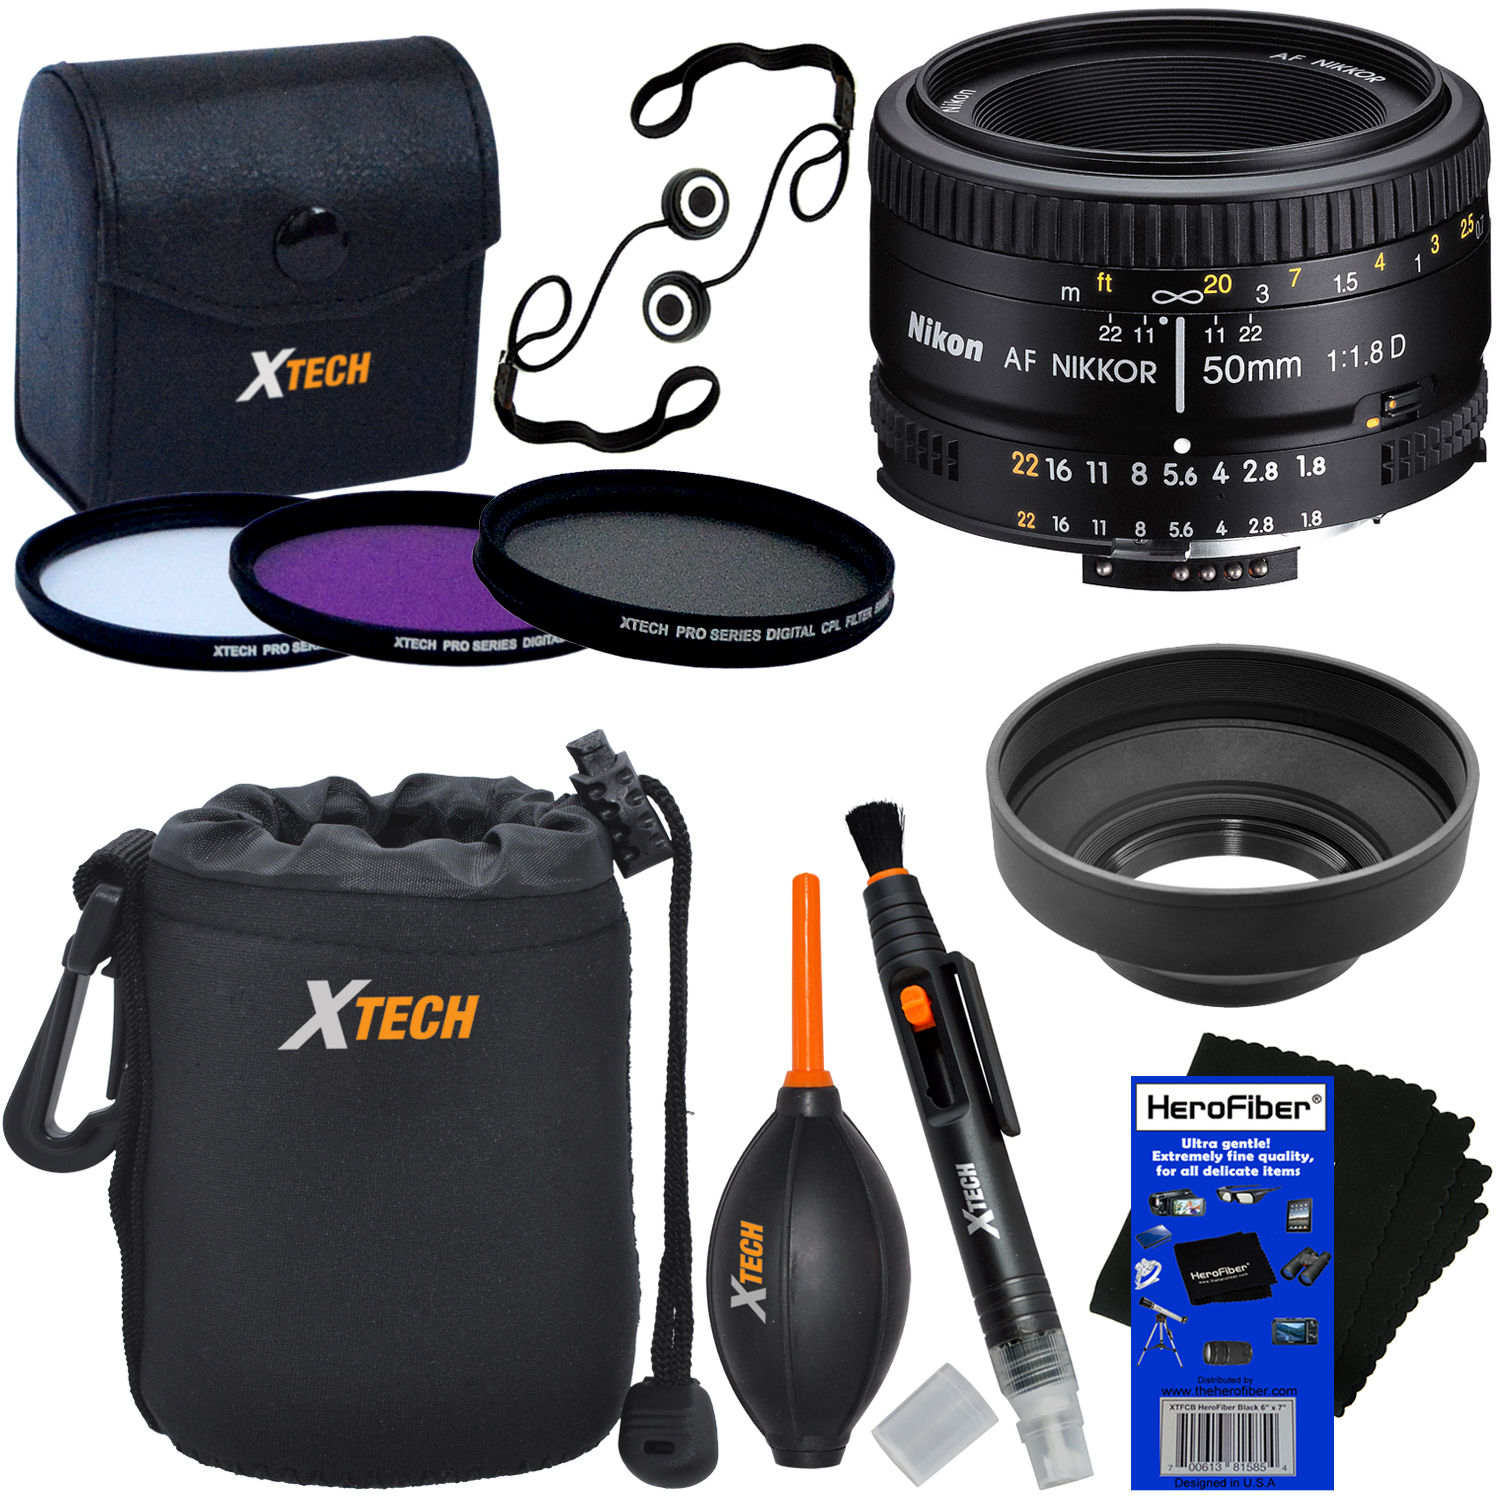 Nikon AF FX NIKKOR 50mm f/1.8D Lens with Auto Focus for Nikon DSLR Cameras + 3pc Filter Kit (UV,FL-D,CPL) + 8pc Accessory Kit w/ HeroFiber Gentle Cleaning Cloth